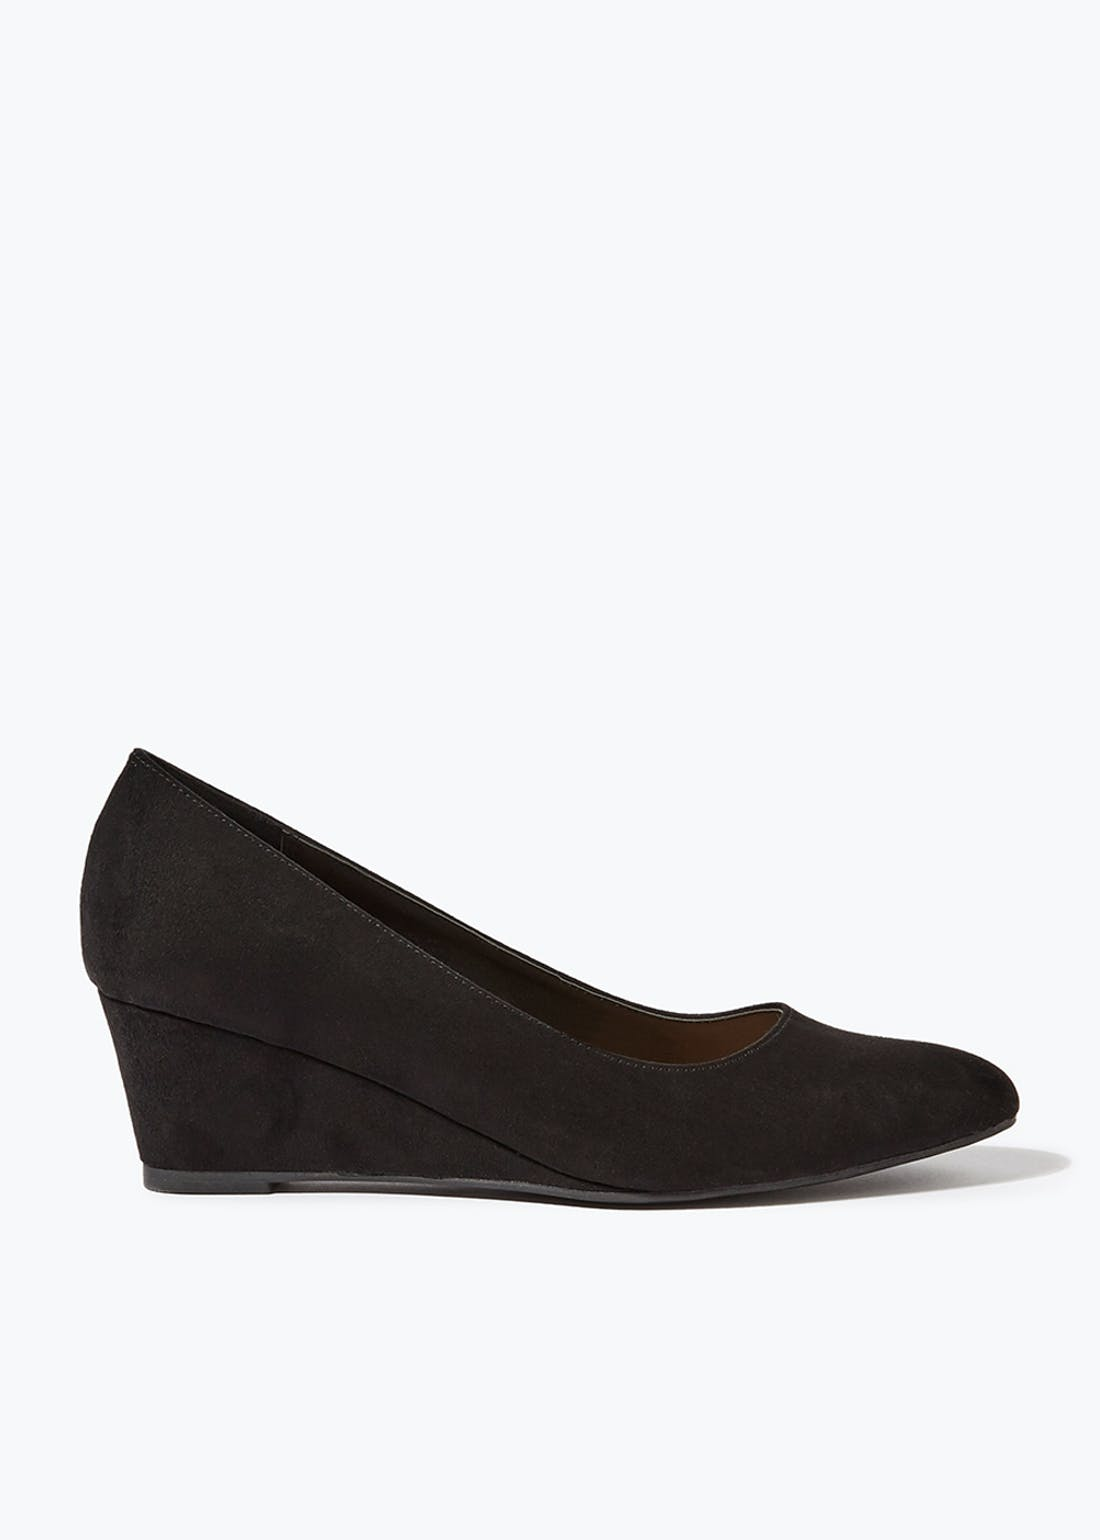 Black Wedge Court Shoes